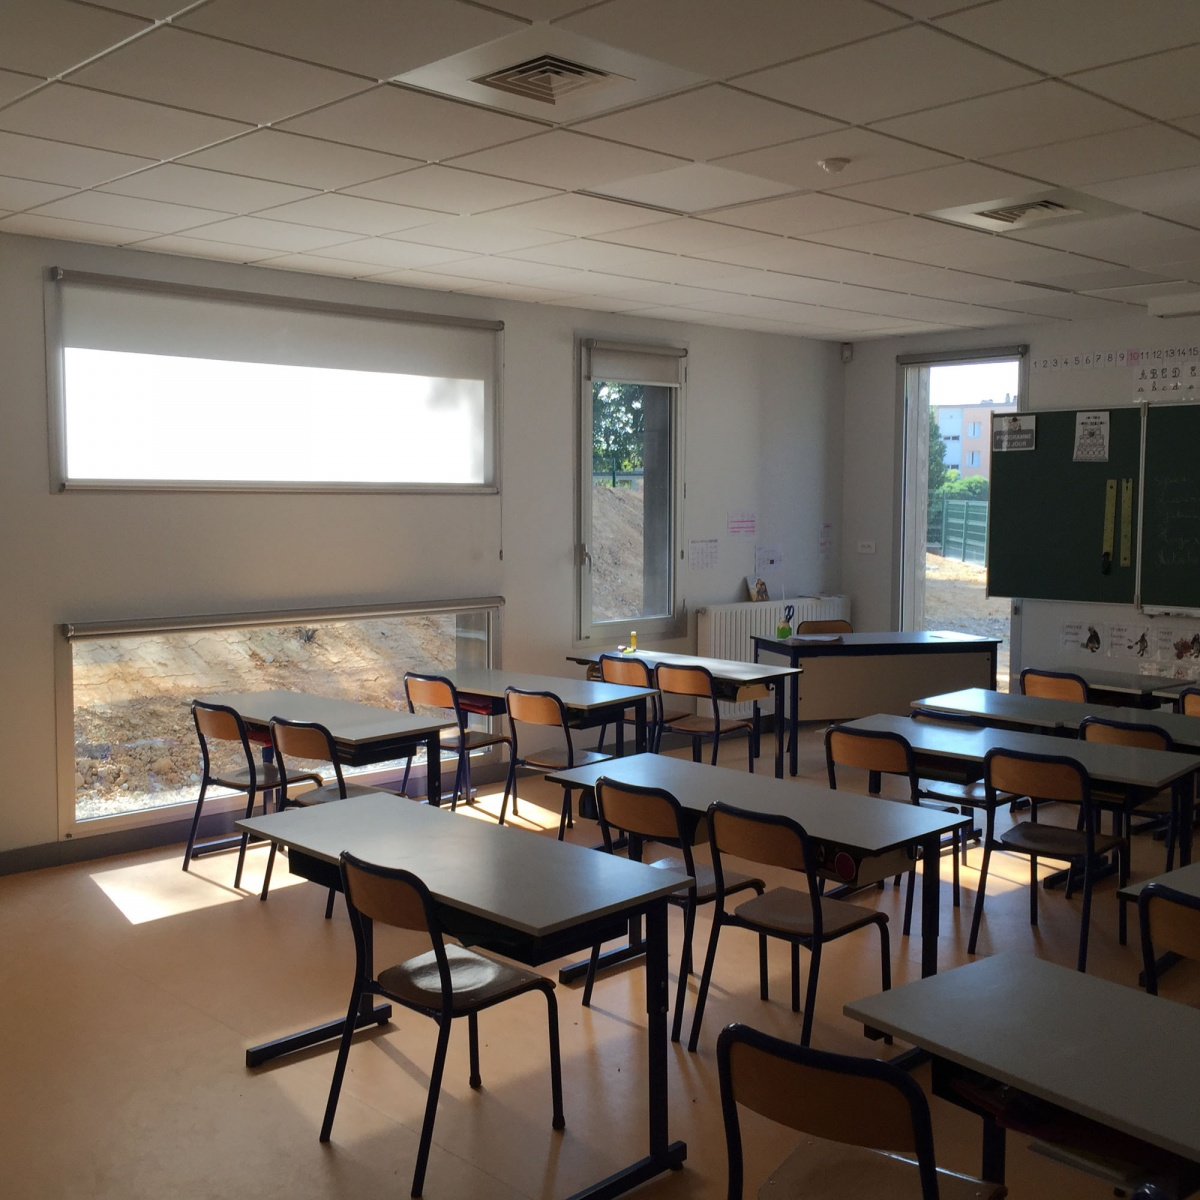 Extension de l'école Bel Air : 20160907_145218542_iOS